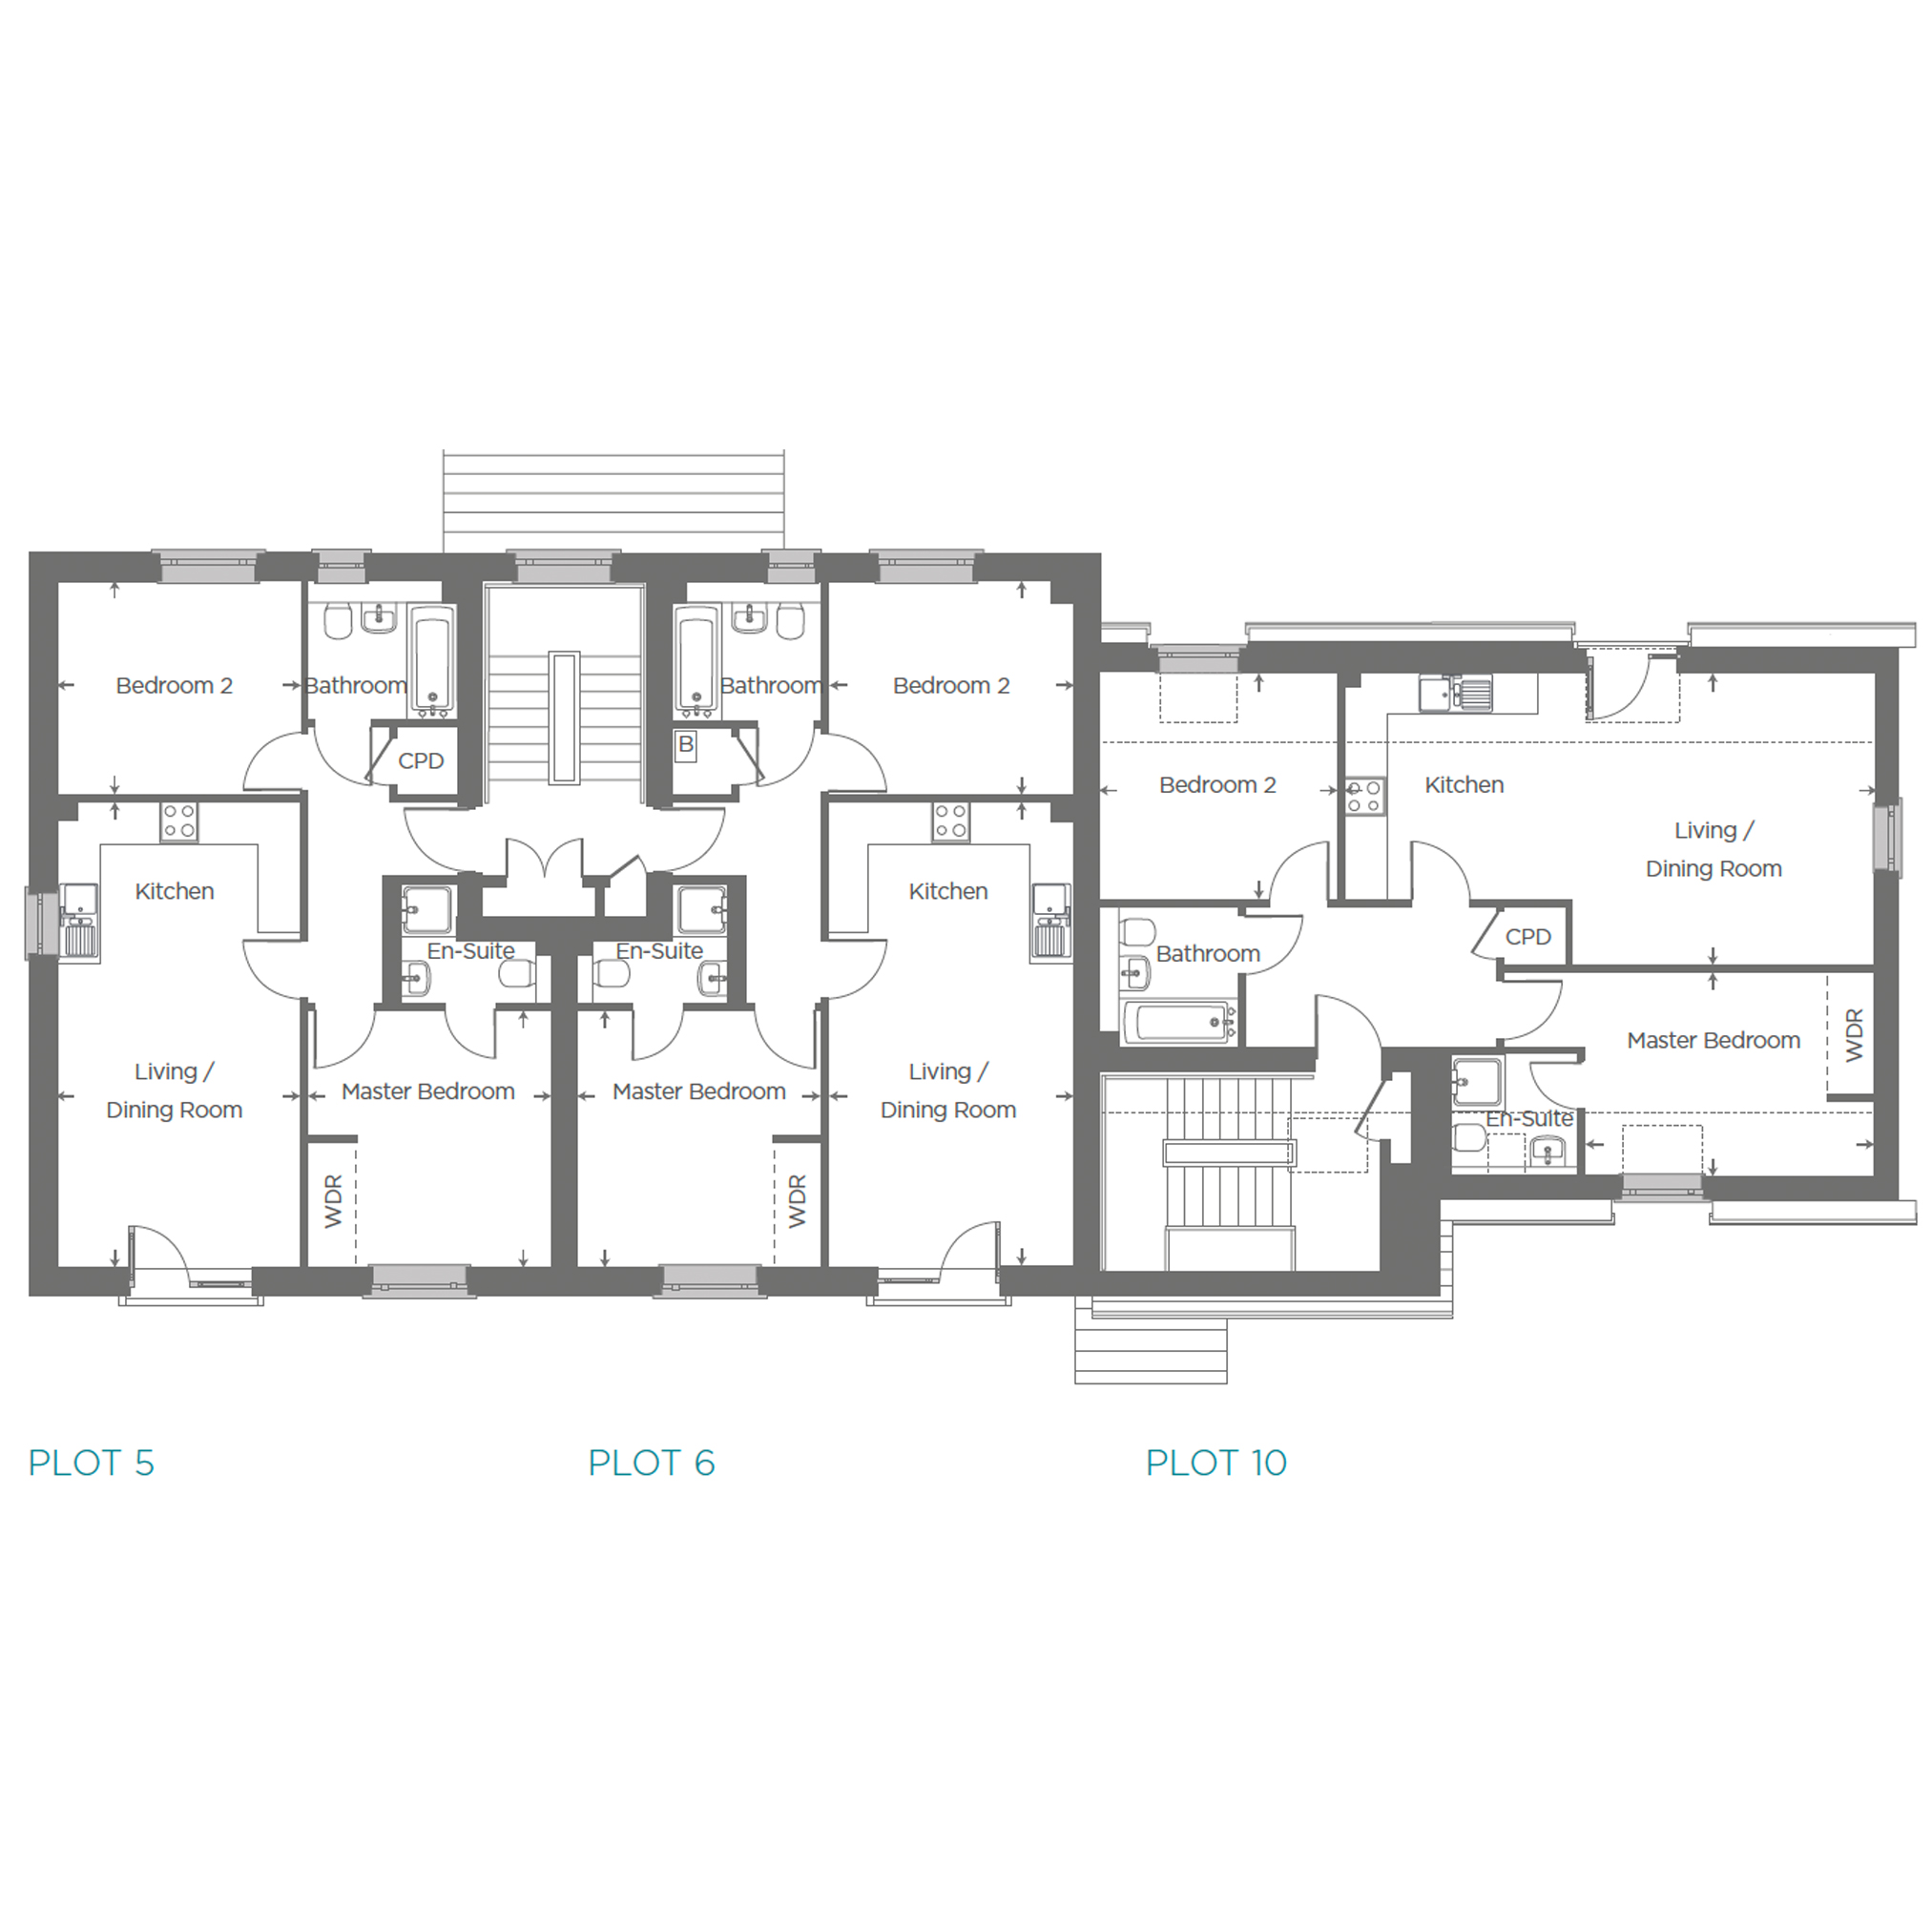 Plot 6 Floor plan